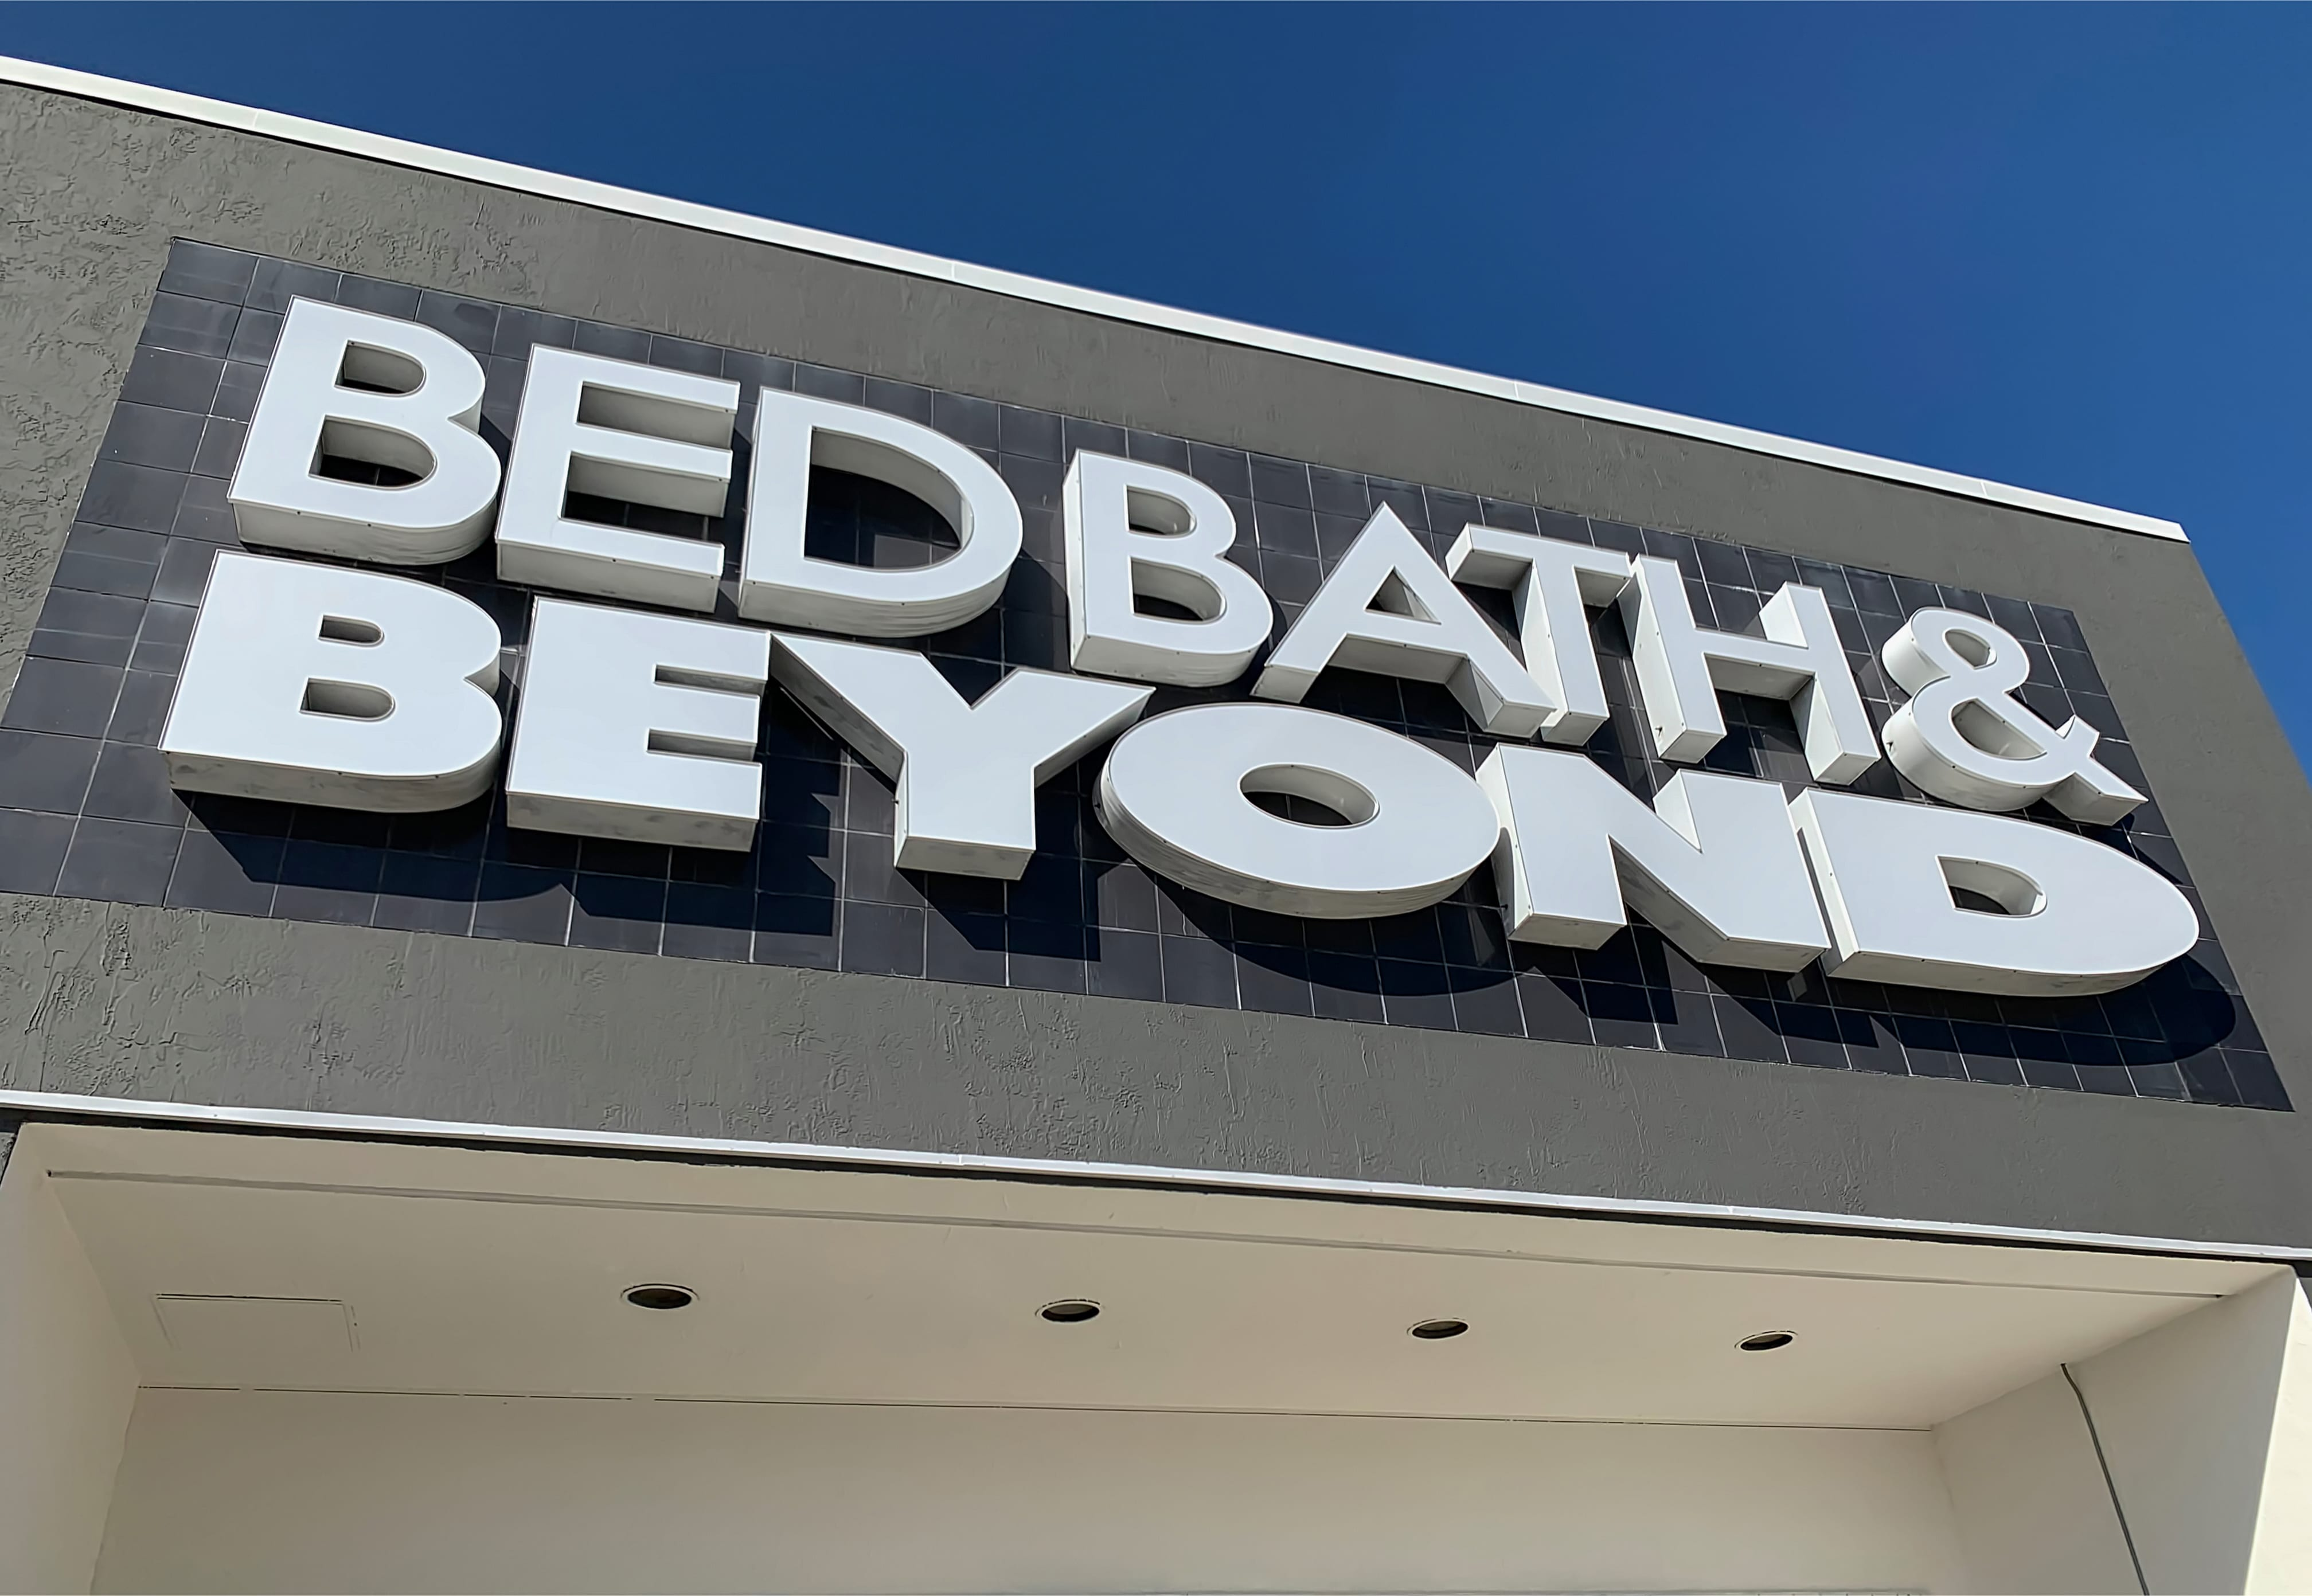 1 800 Flowers Buys Bed Bath Beyond S Personalization Mall Pymnts Com Adverse business, financial, or economic conditions will likely impair the obligor's capacity or willingness to meet its financial commitments. 1 800 flowers buys bed bath beyond s personalization mall